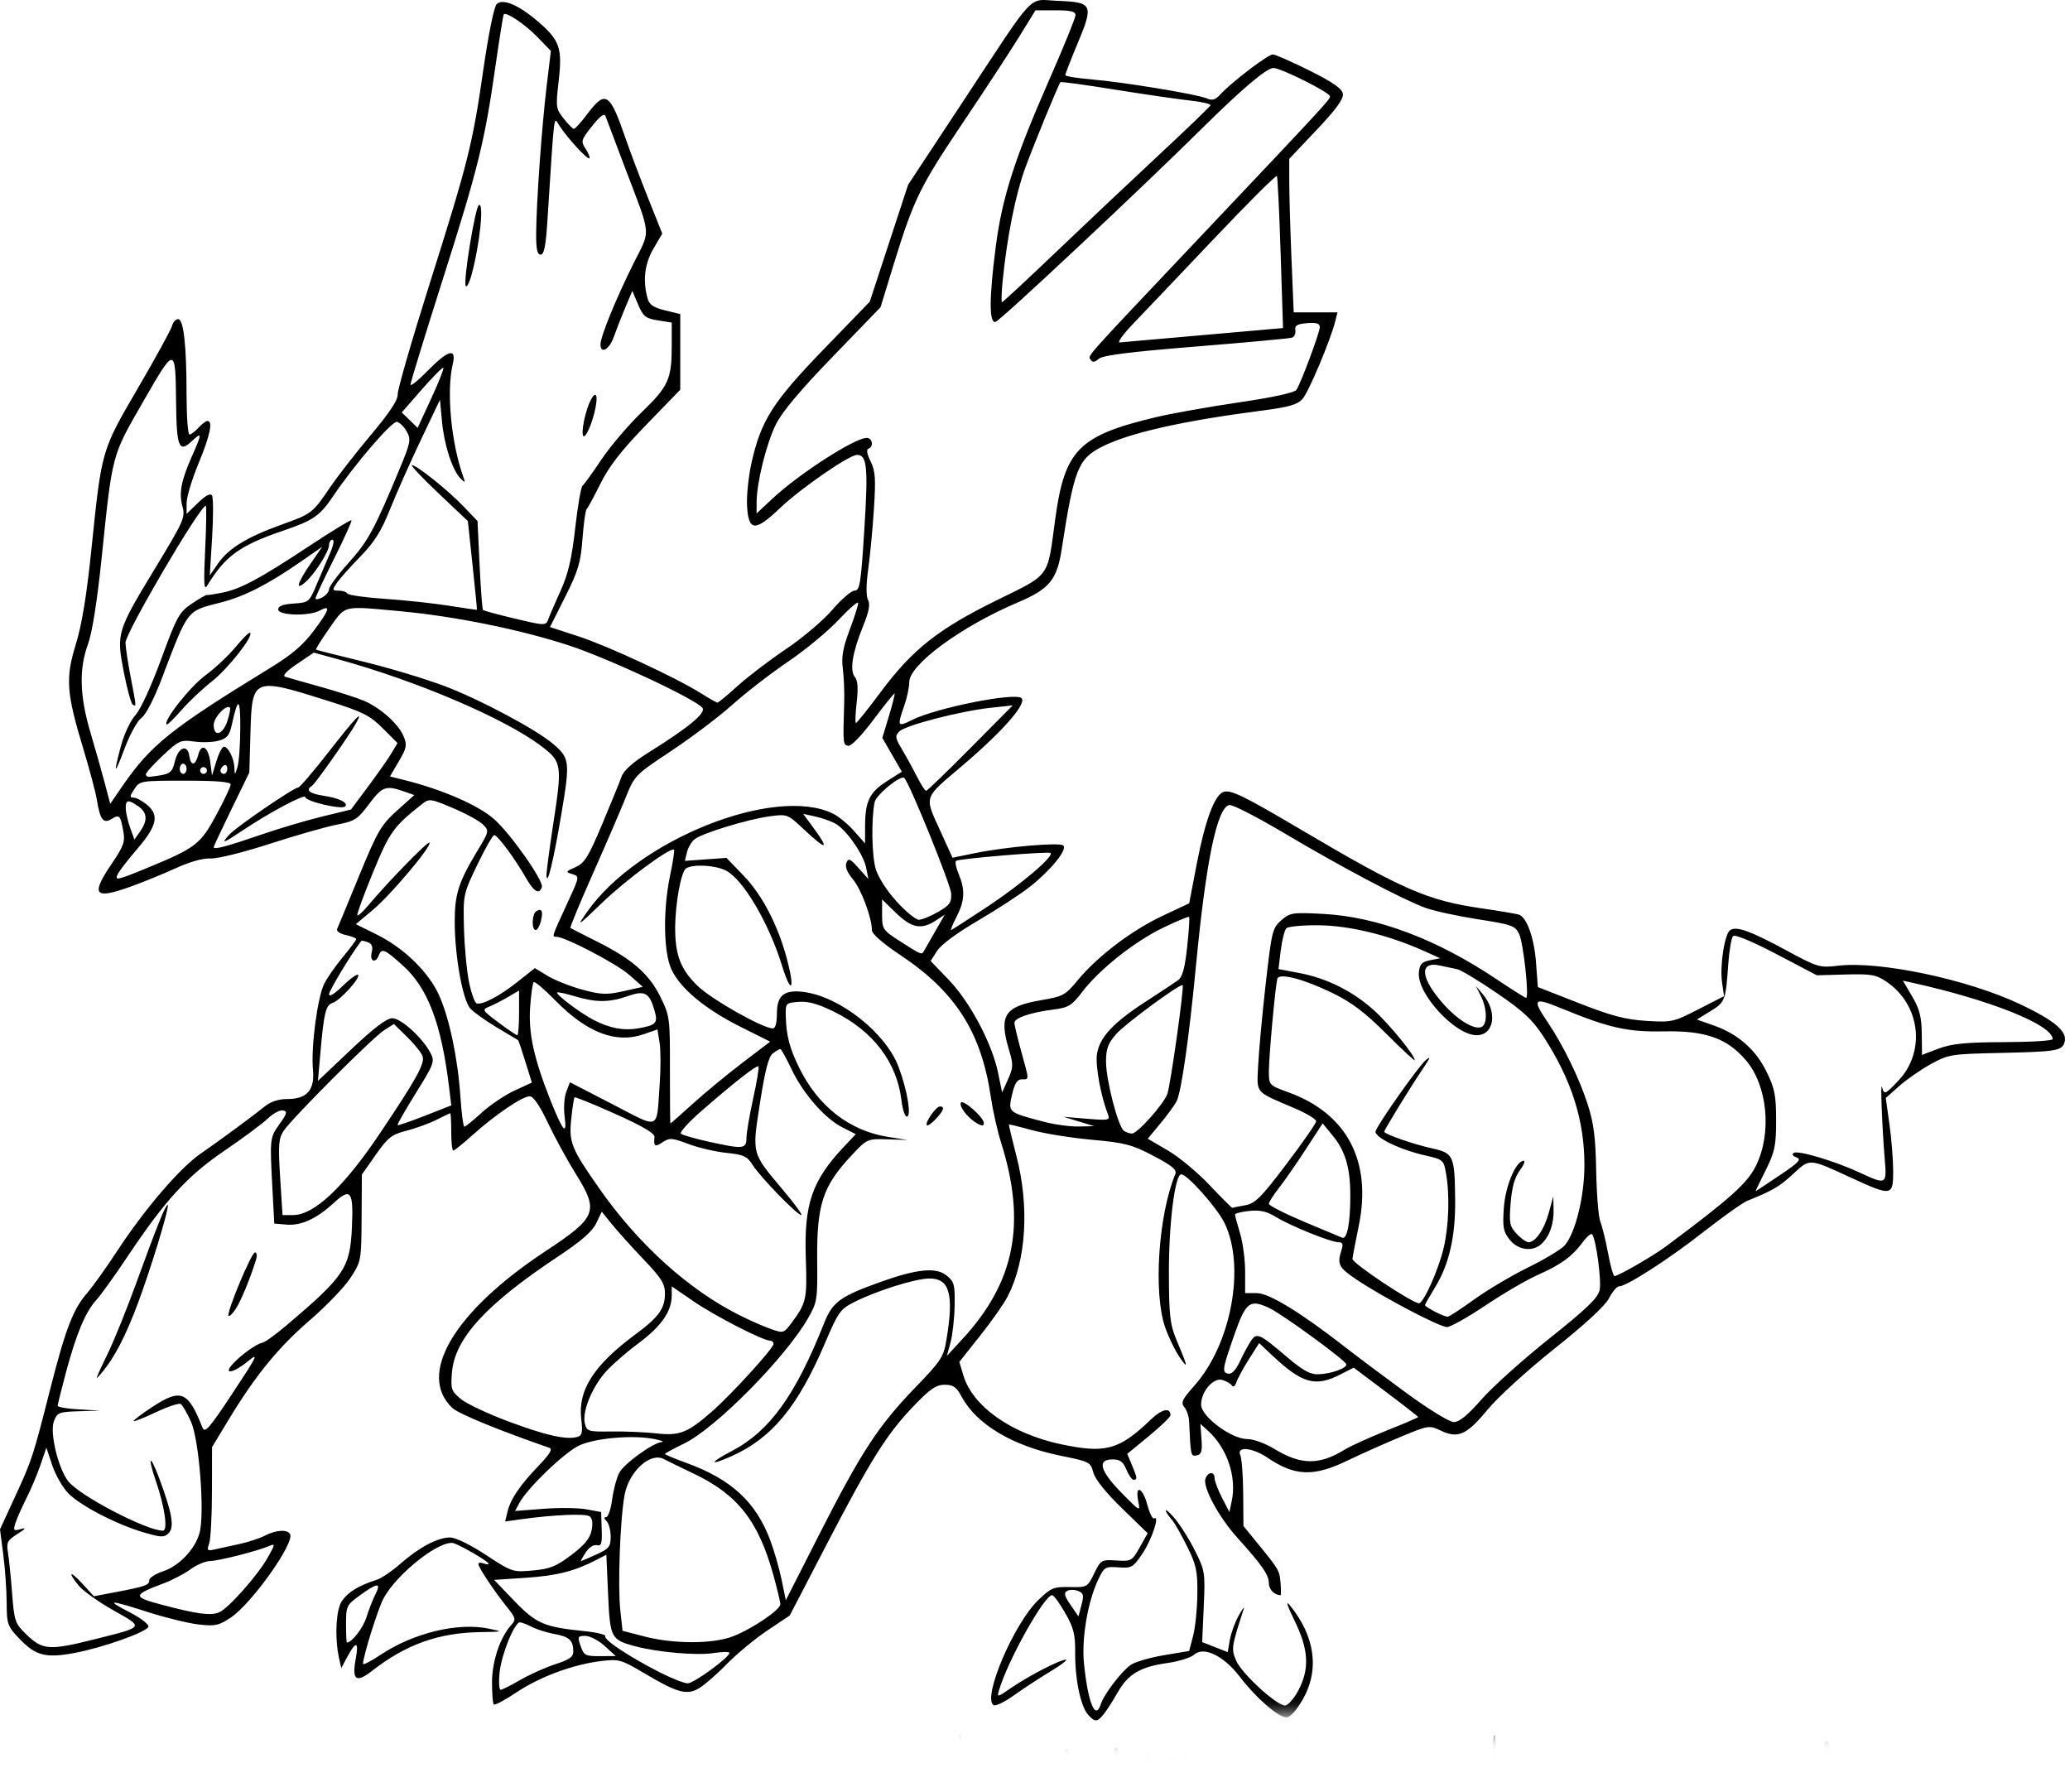 Coloriage Kyurem Noir Pokemon Coloriagepokemon In 2020 Okay Gesture